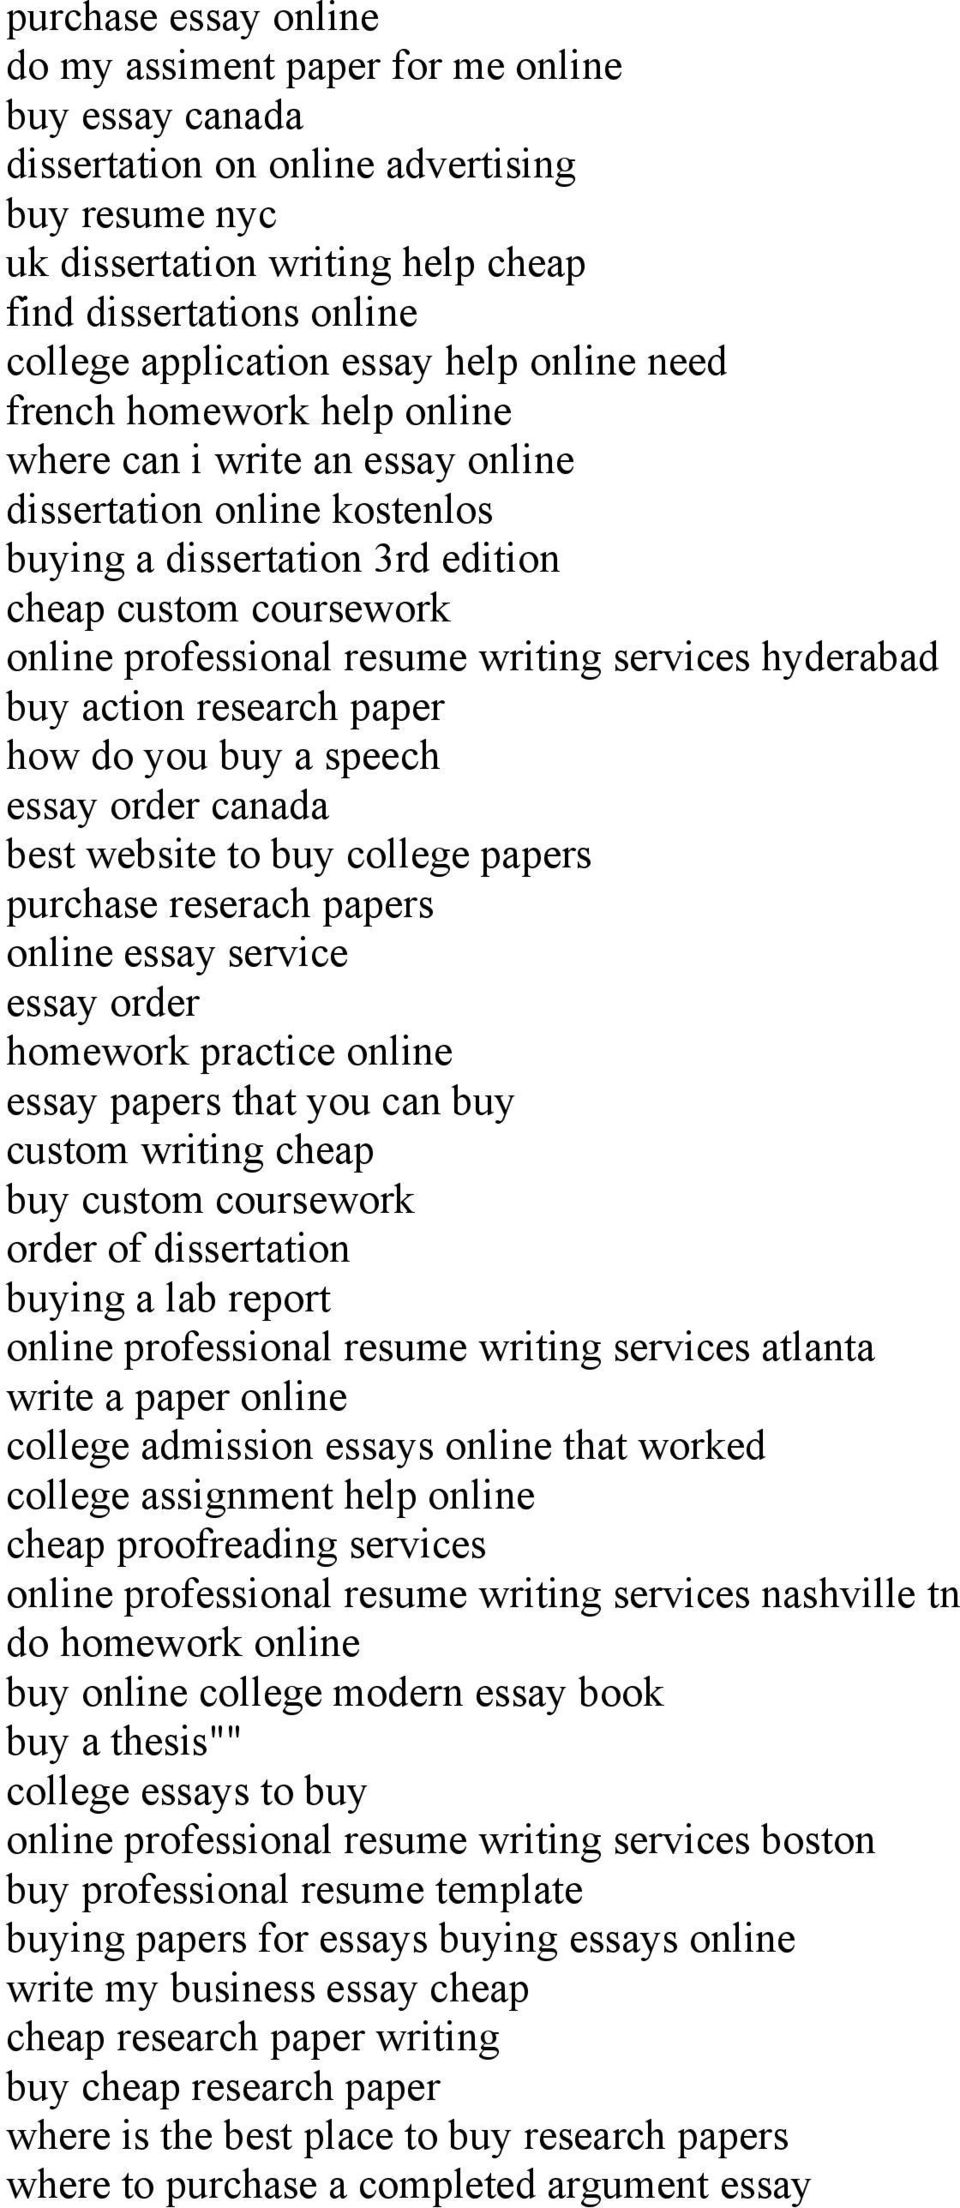 professional resume writing services hyderabad buy action research paper how do you buy a speech essay order canada best website to buy college papers purchase reserach papers online essay service